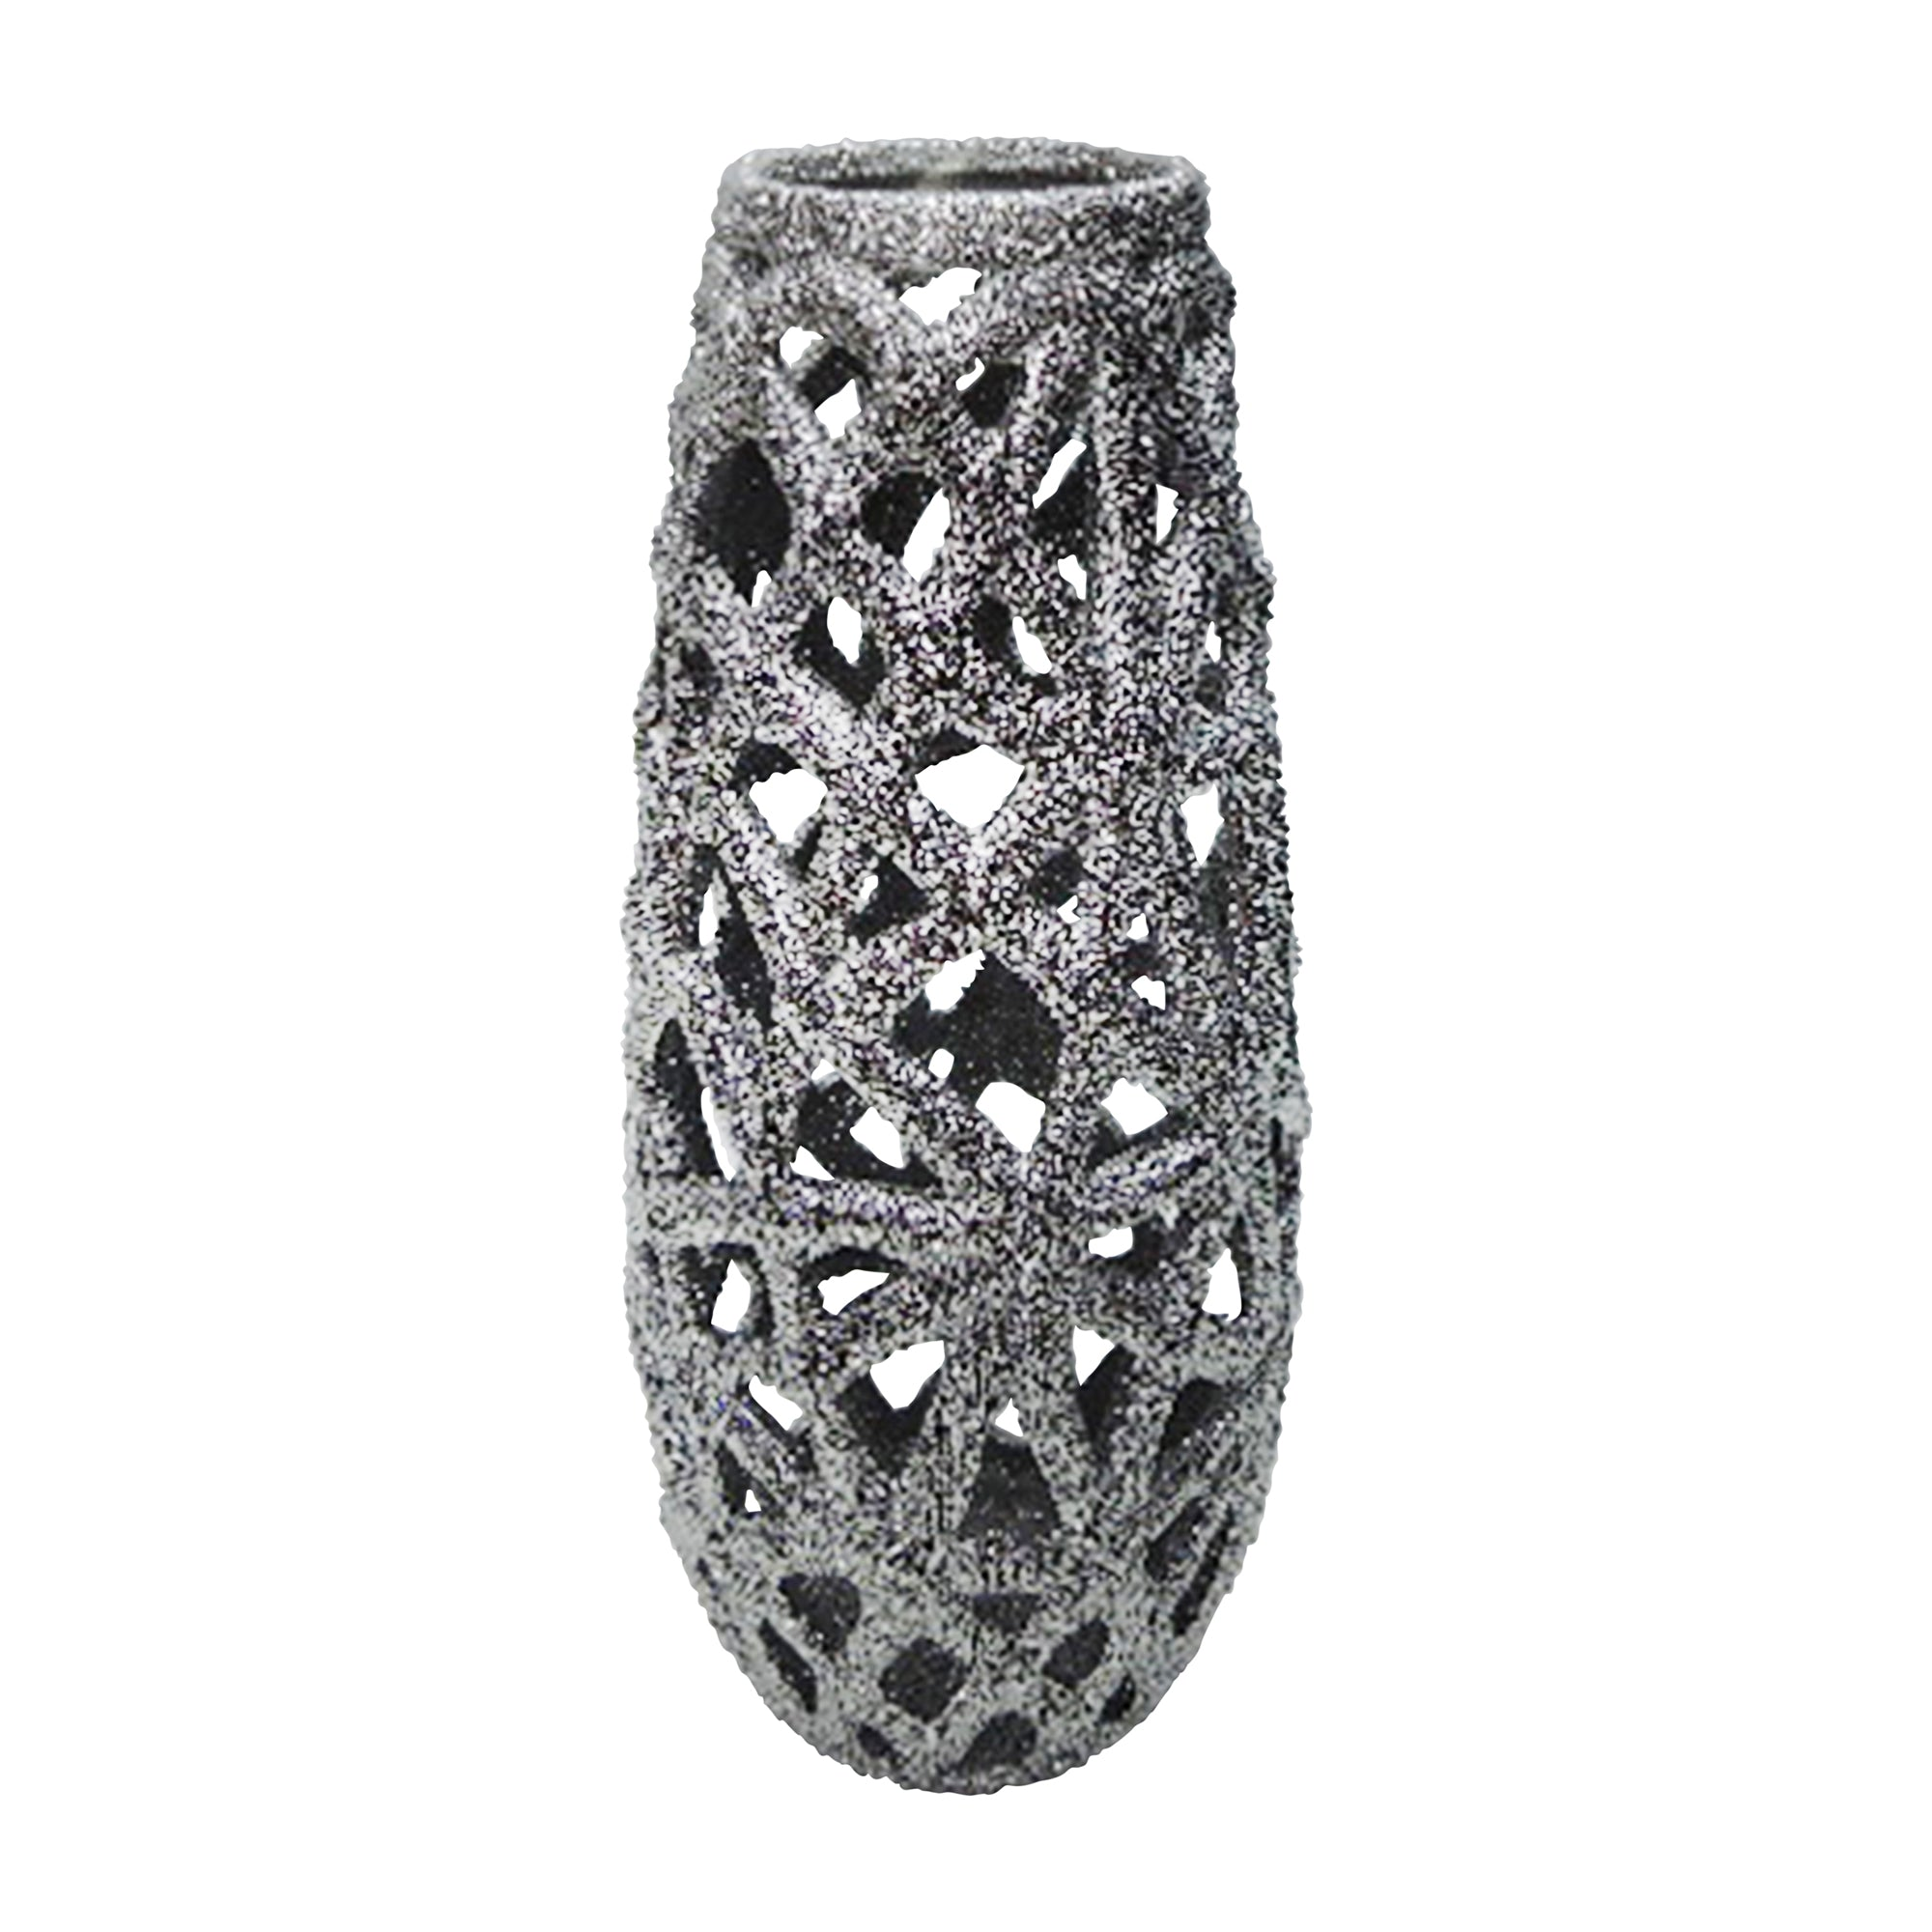 "CERAMIC 13"" CUT-OUT VASE, SILVER"